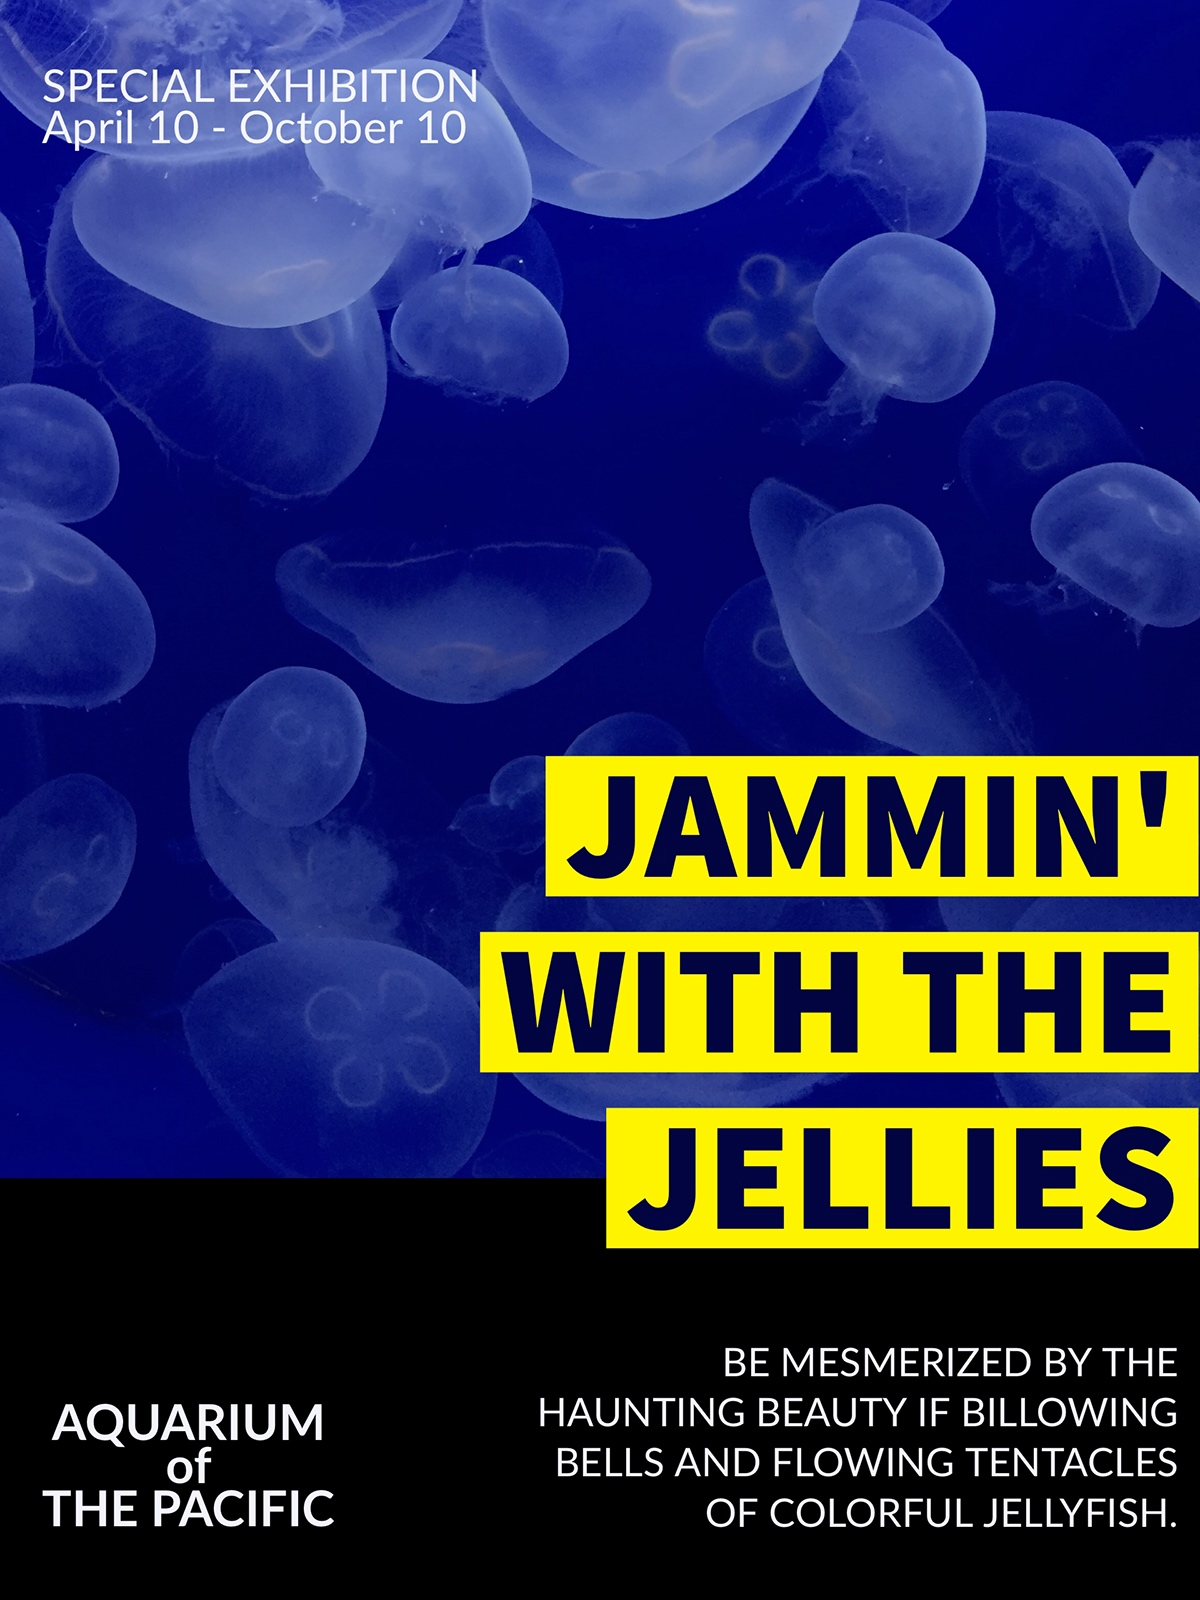 JAMMIN' WITH THE JELLIES JAMMIN' WITH THE JELLIES BE MESMERIZED BY THE HAUNTING BEAUTY IF BILLOWING BELLS AND FLOWING TENTACLES OF COLORFUL JELLYFISH. AQUARIUM of  THE PACIFIC SPECIAL EXHIBITION  April 10 - October 10